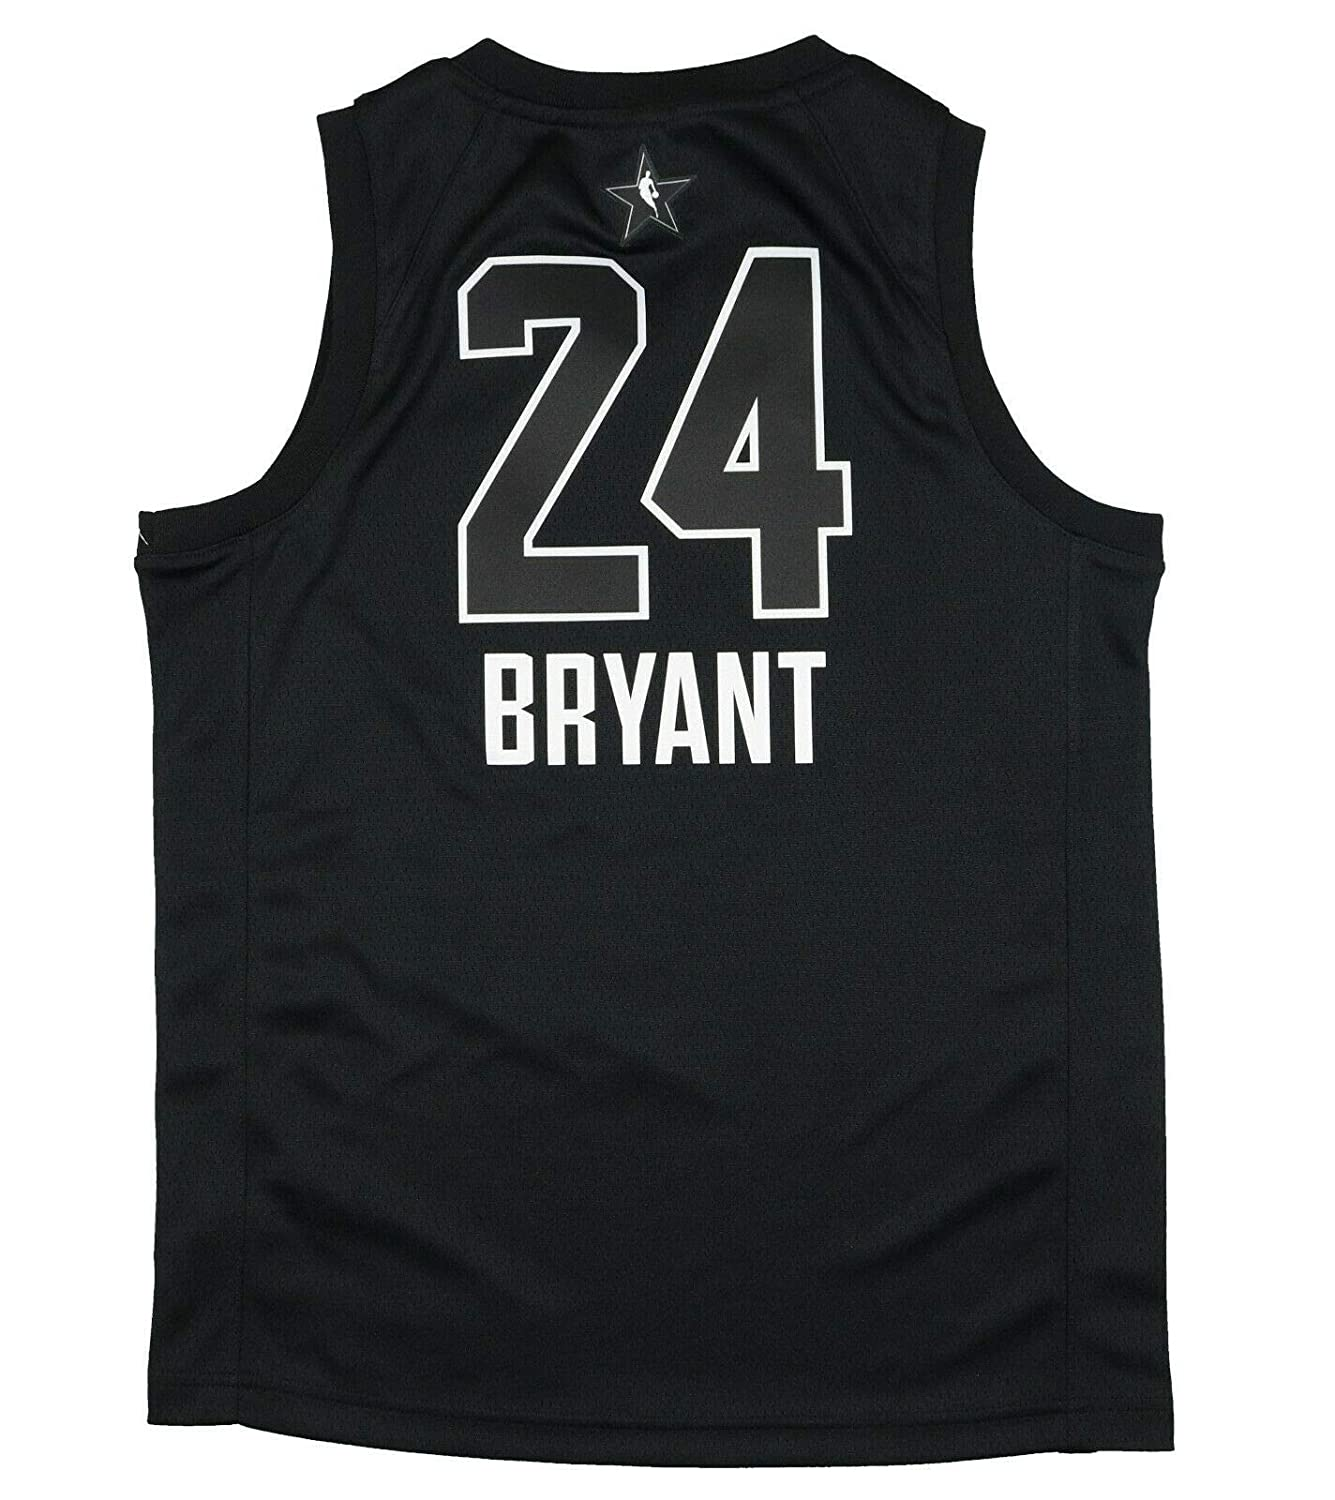 super popular 00892 49969 Nike Jordan Youth 2018 NBA All-Star Game Kobe Bryant Black ...